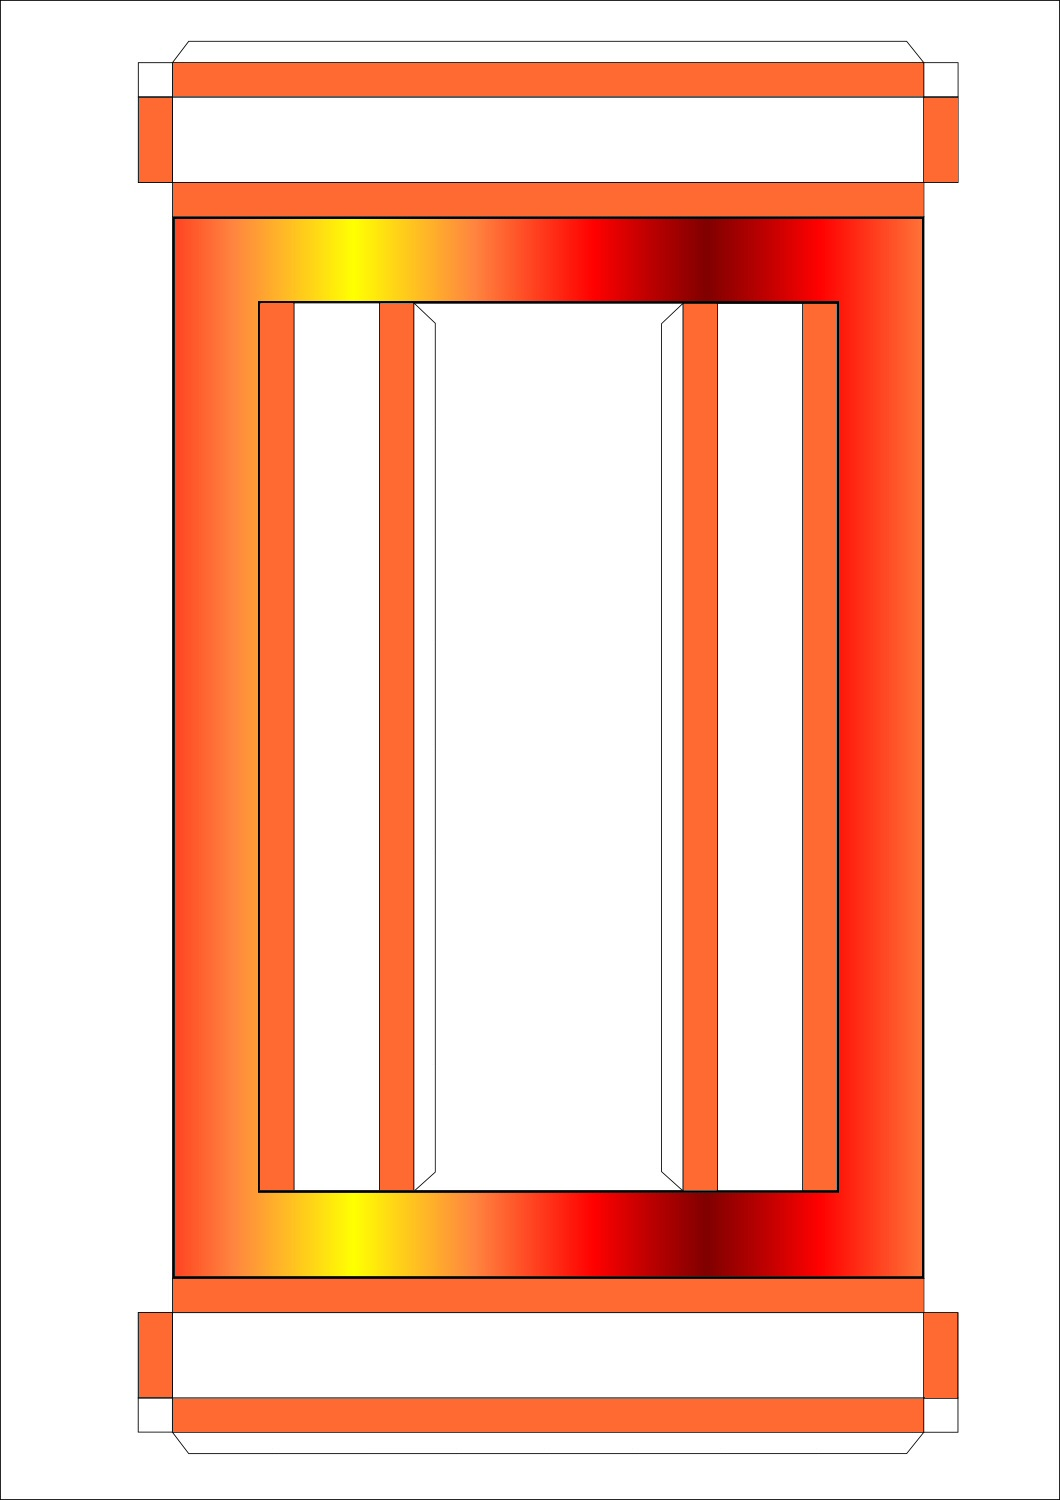 5x7_box_frame_orange_and_red